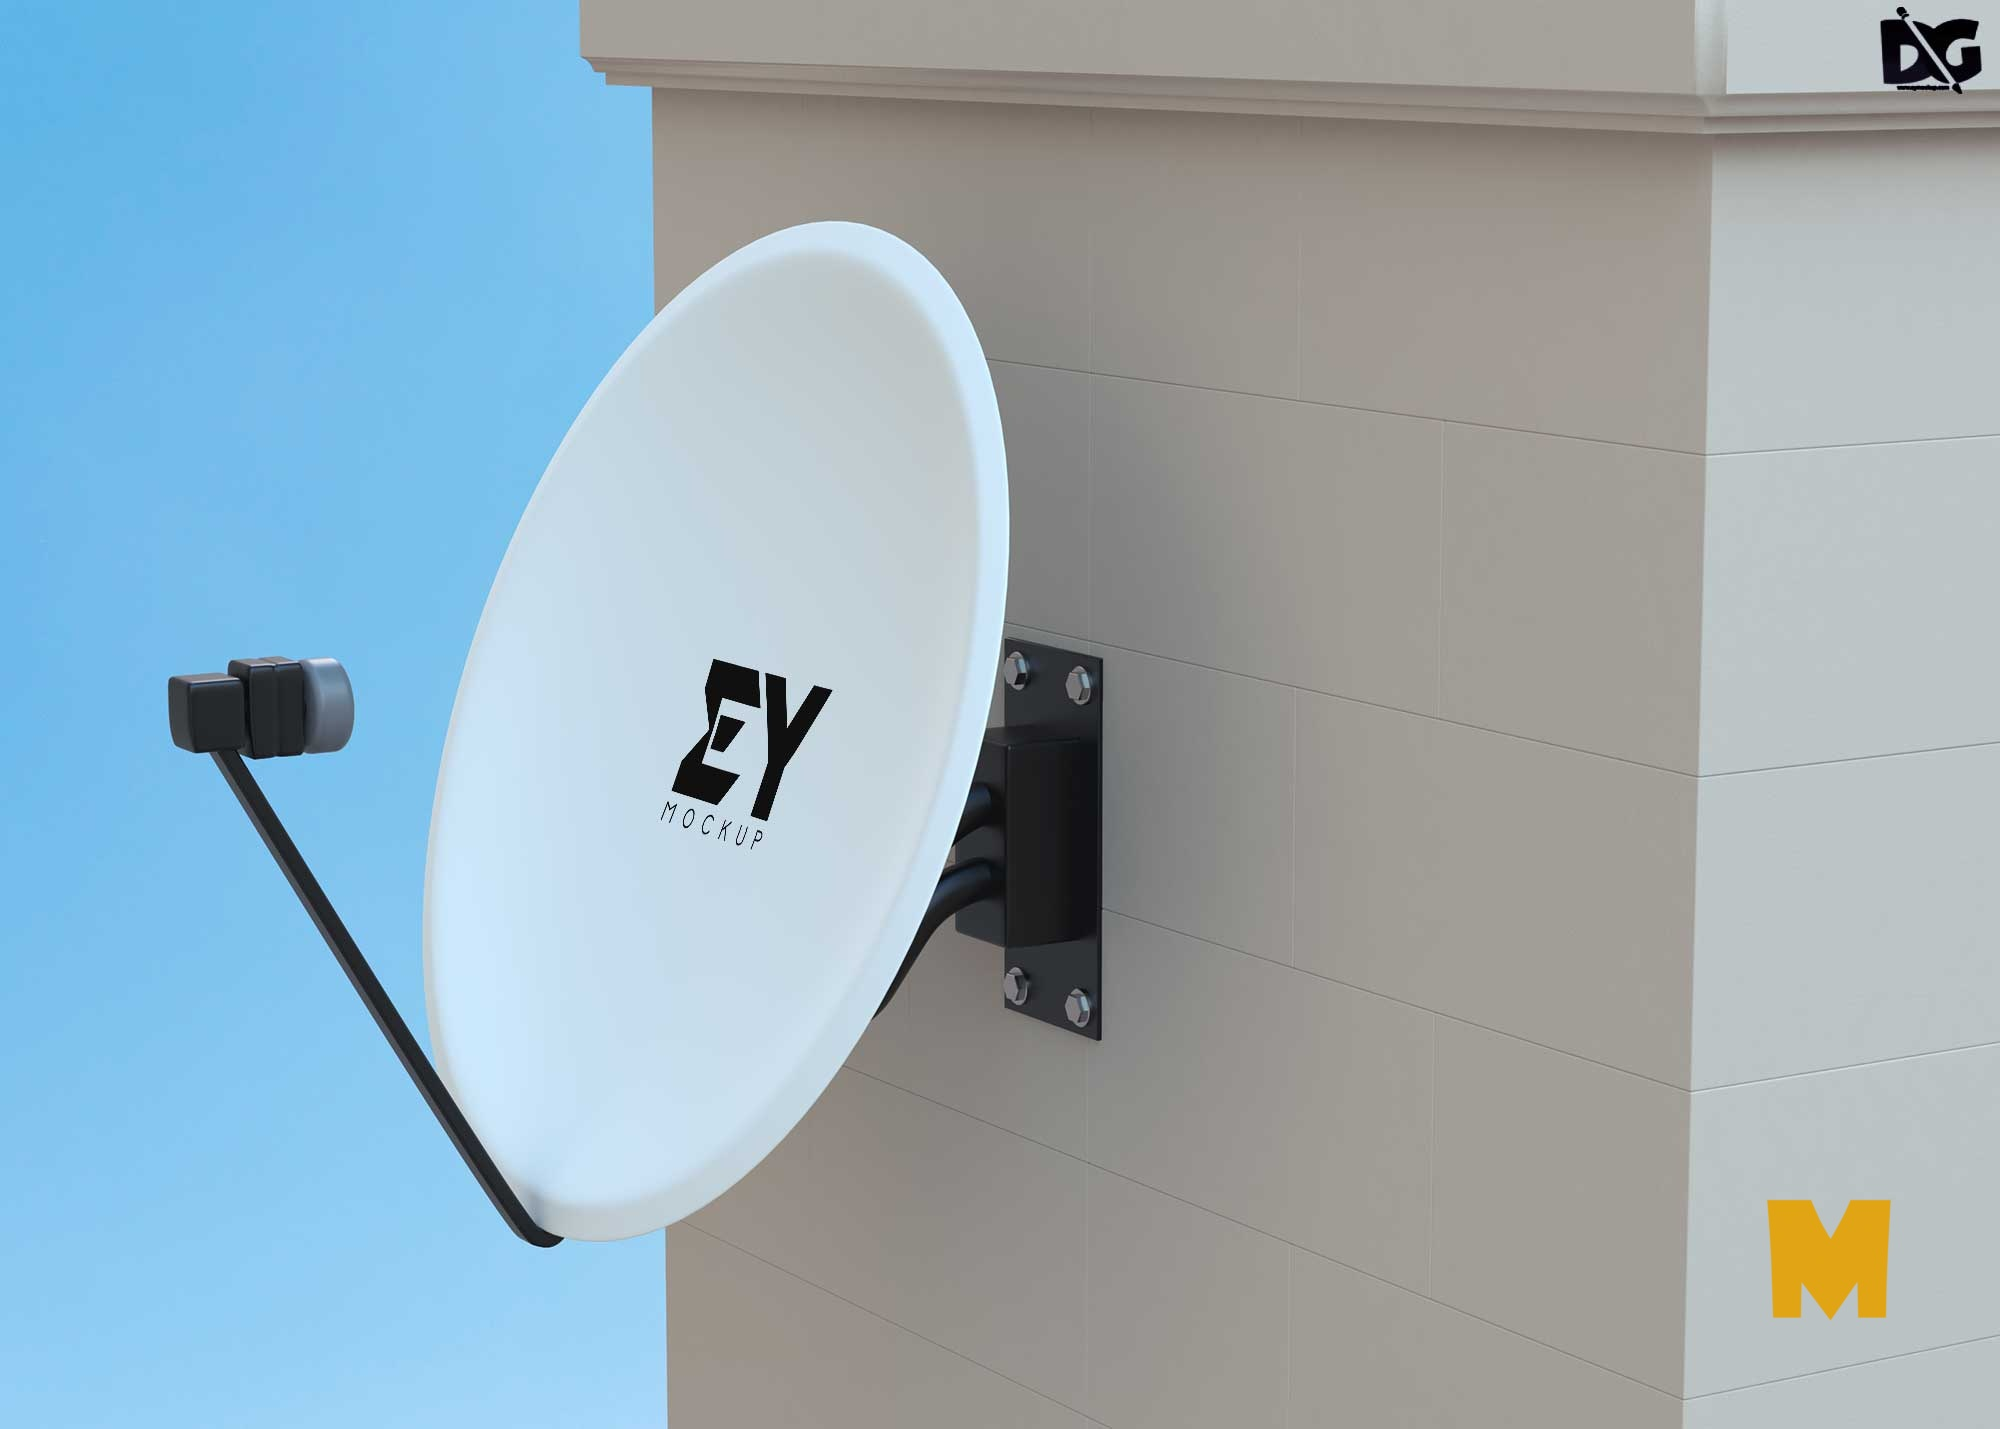 Free Dish Tv Artwork Mockup